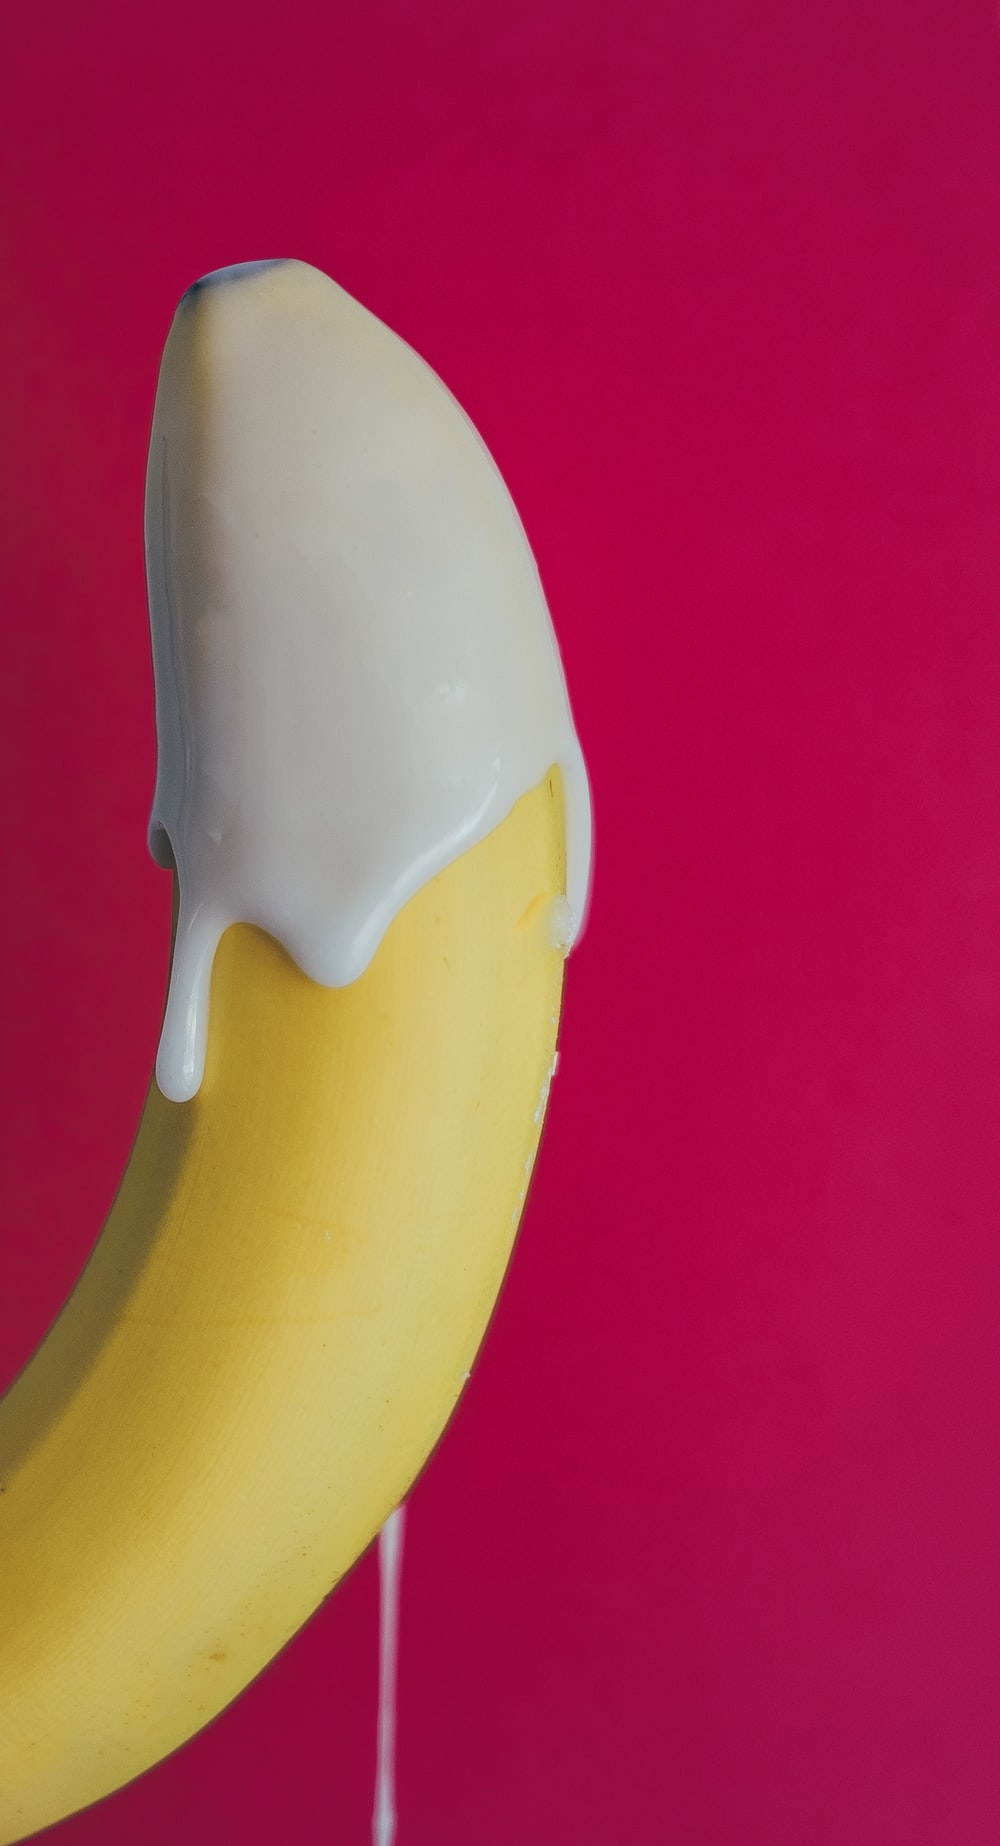 yellow banana with cream